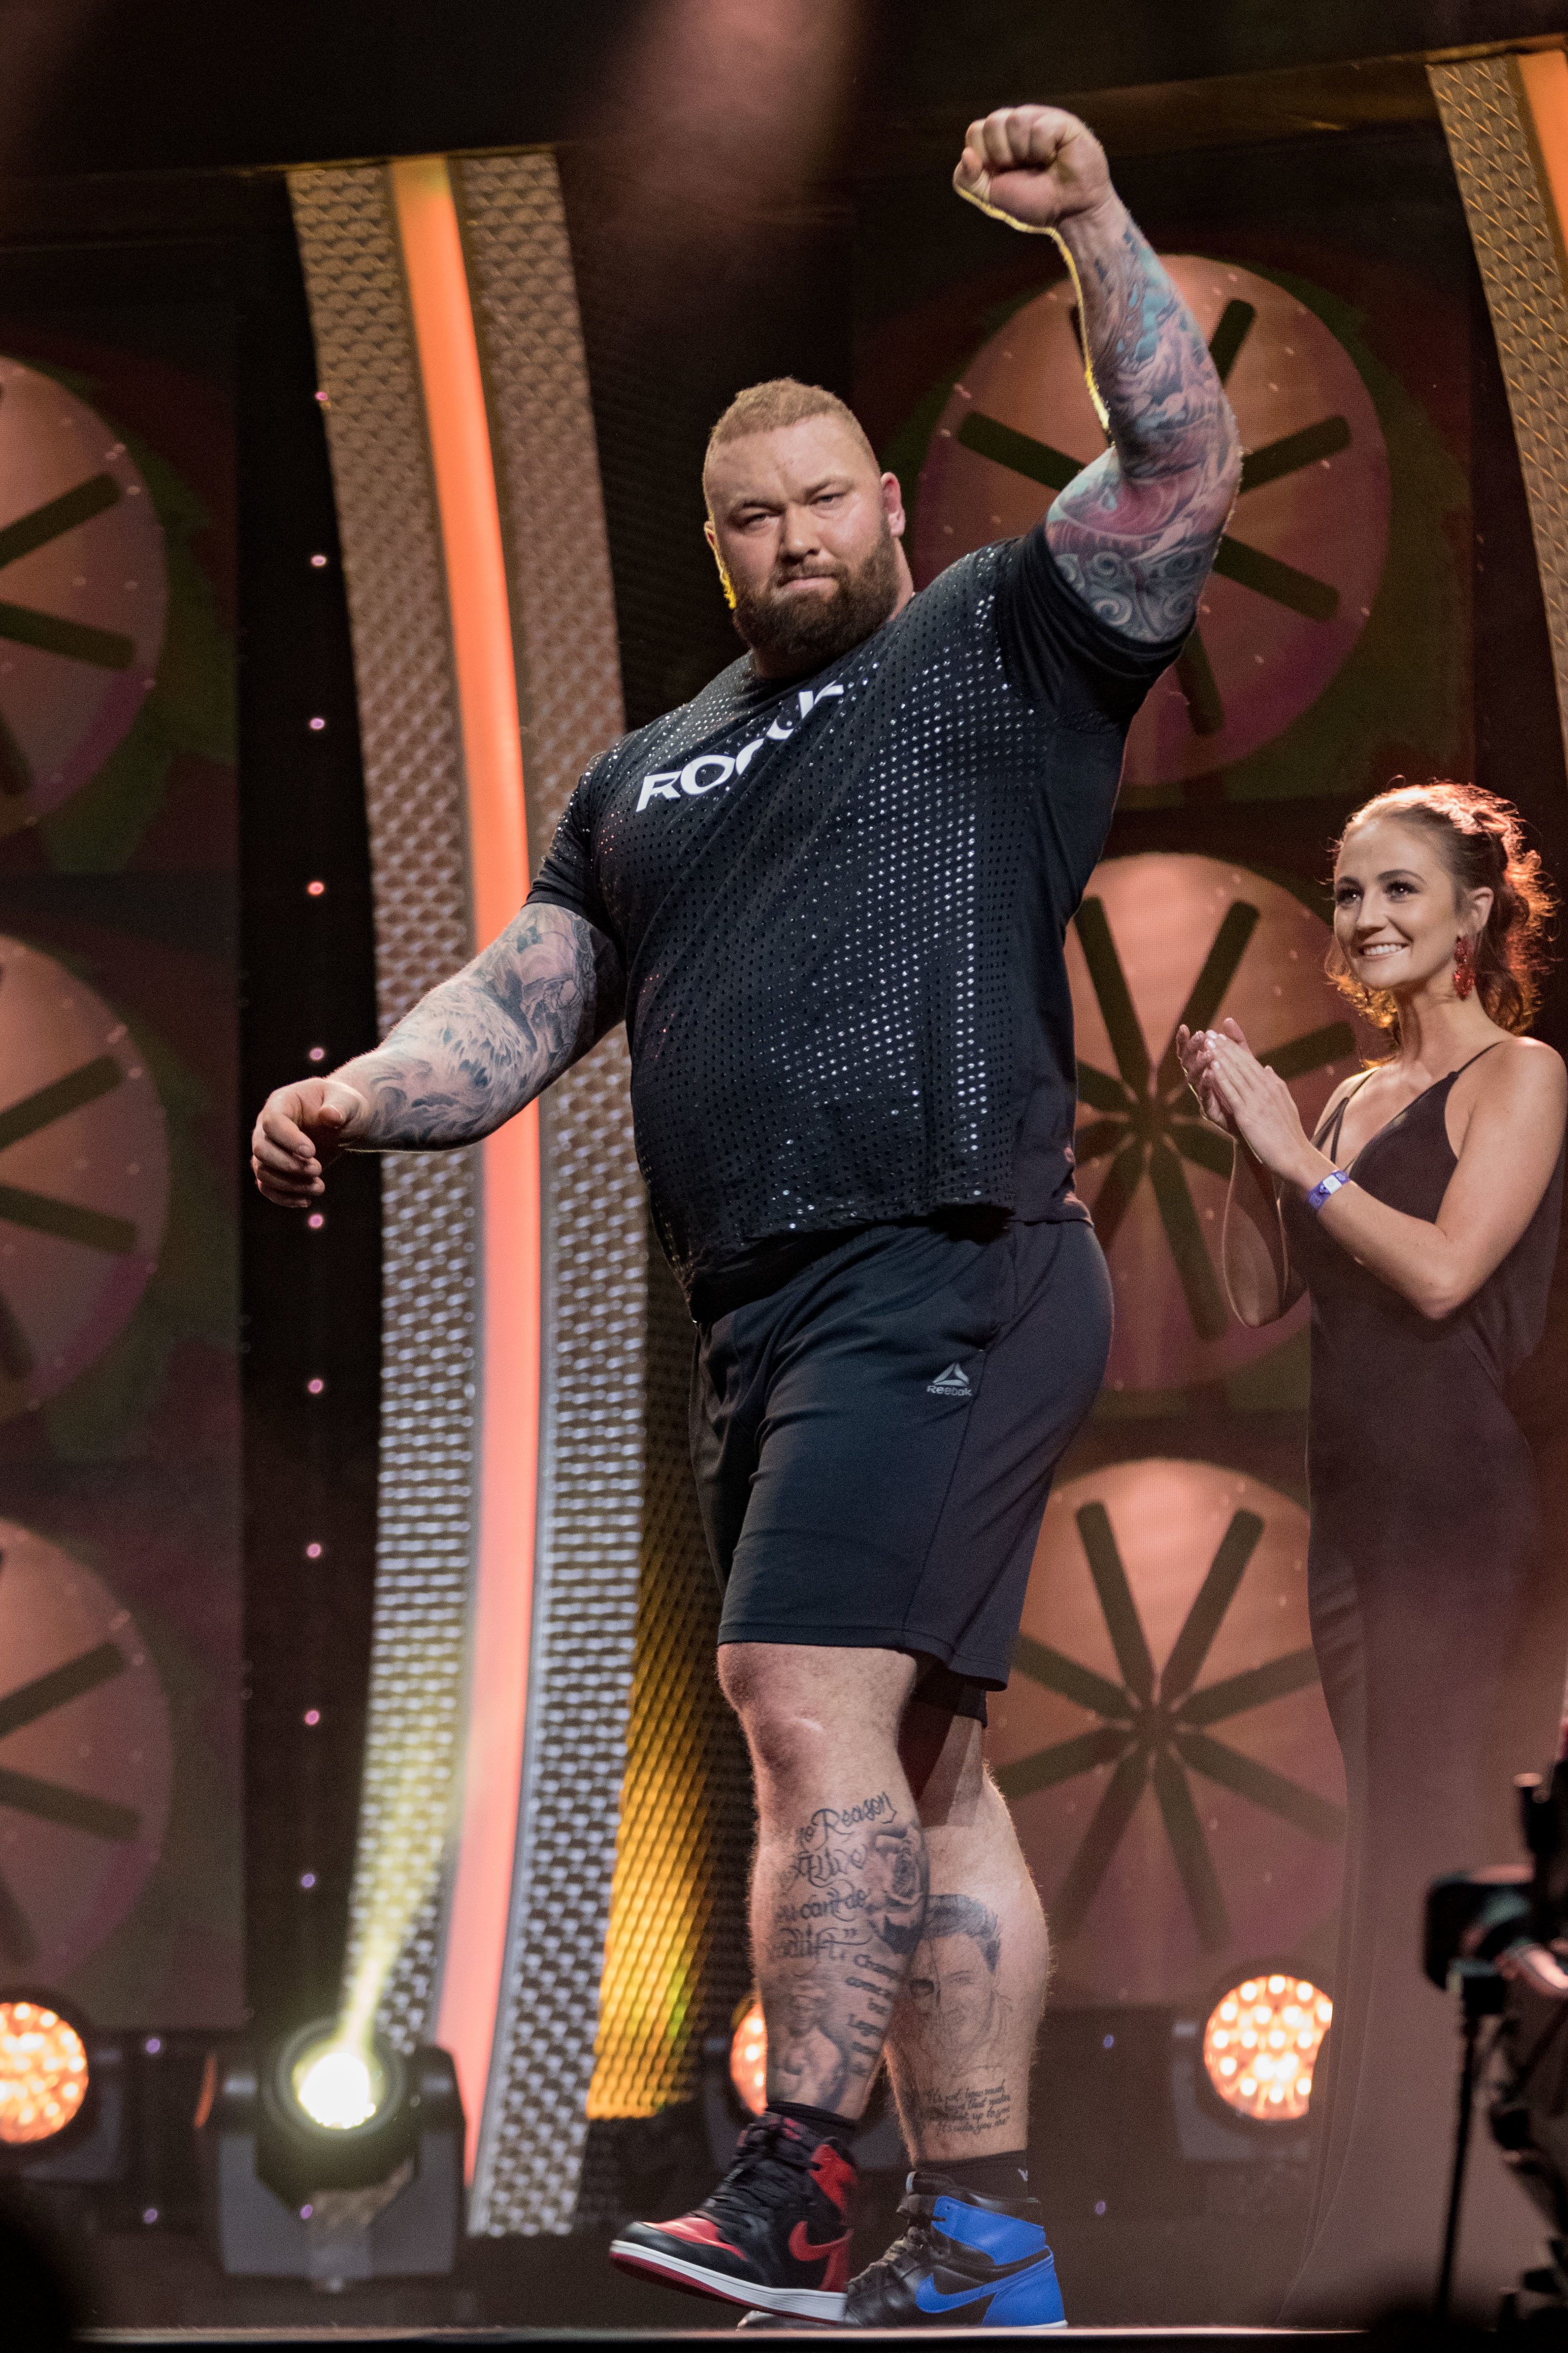 The strongman claimed the tile after dead-lifting a ton. Credit: PA